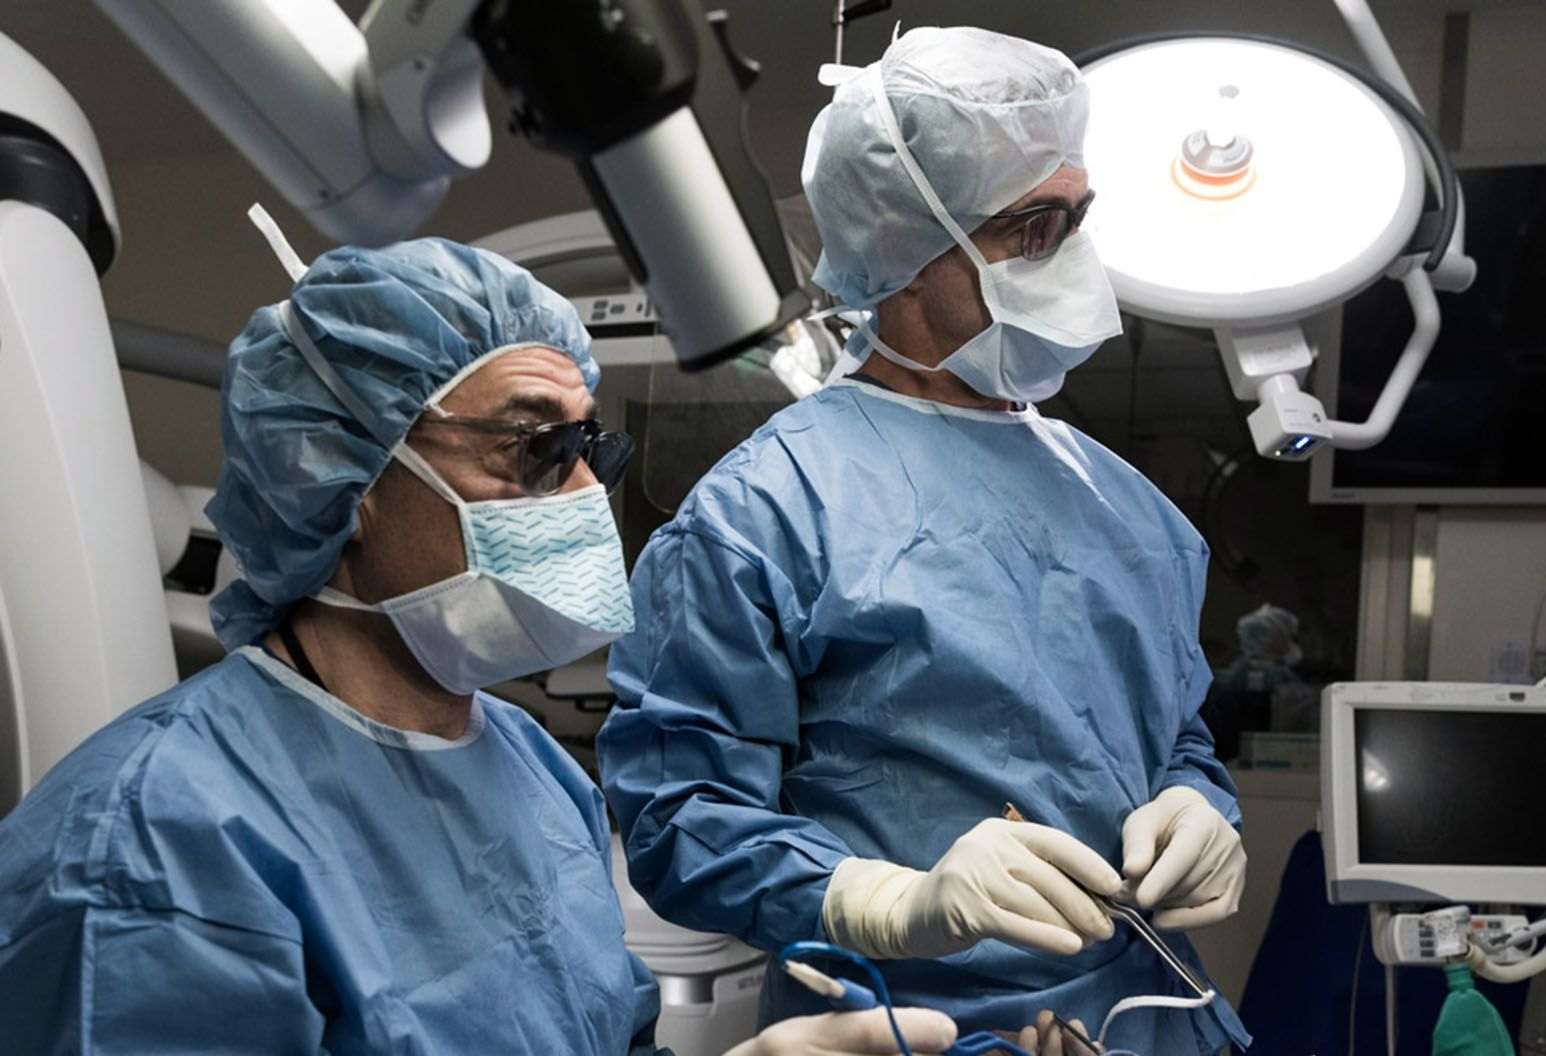 Two surgeons dressed in surgical gowns, masks, and head coverings are looking at a monitor during surgery